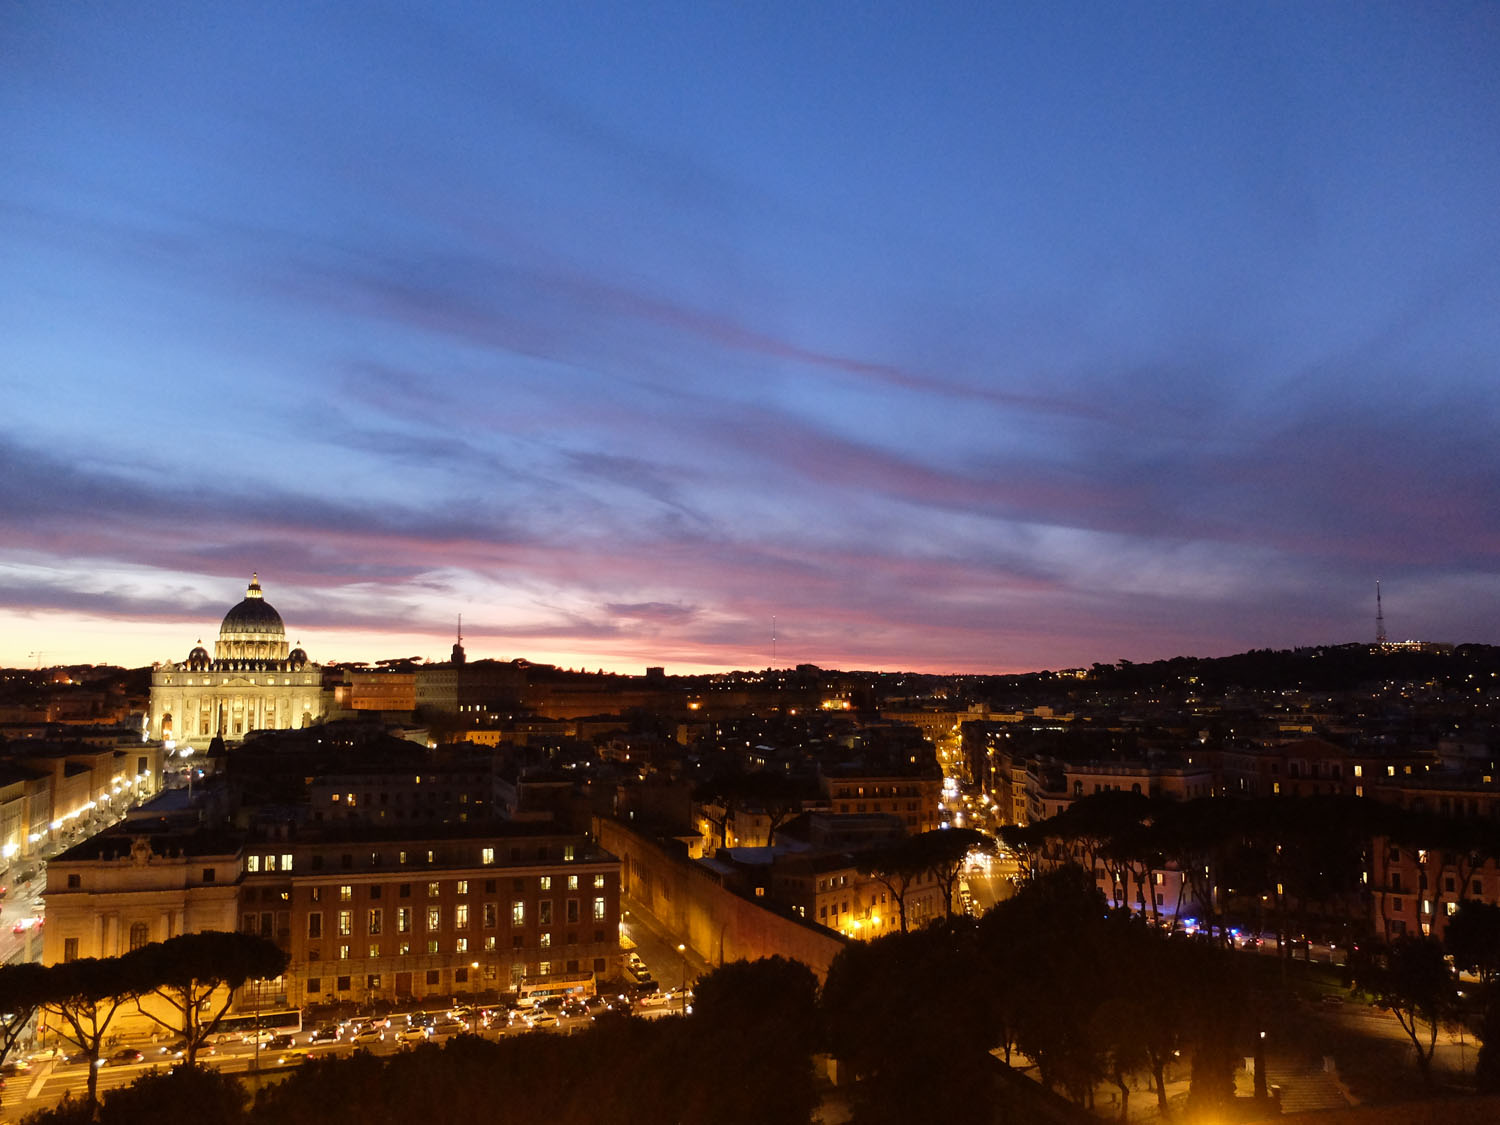 Rome seen from Castel Sant'Angelo at sunset